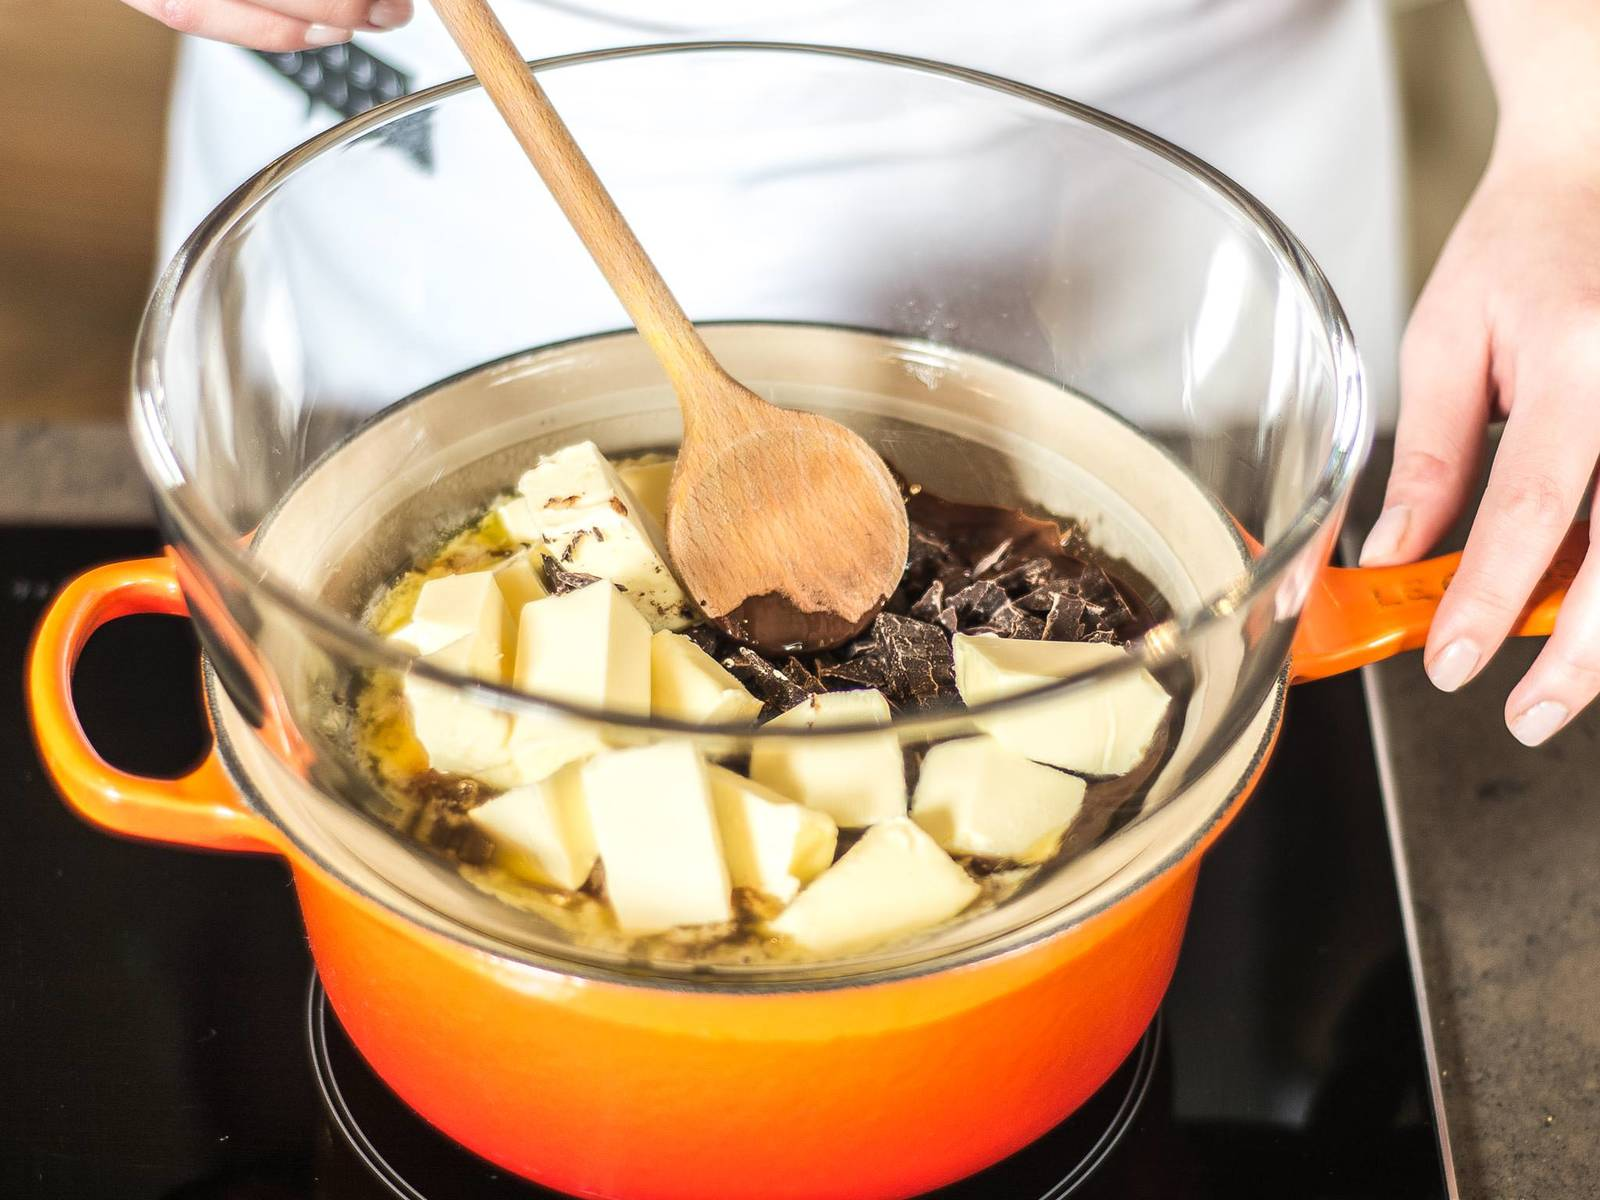 Preheat the oven to 190°C/ 375°F. Cut the  chocolate and butter into small pieces and slowly melt in a double boiler (water bath) with the sugar.